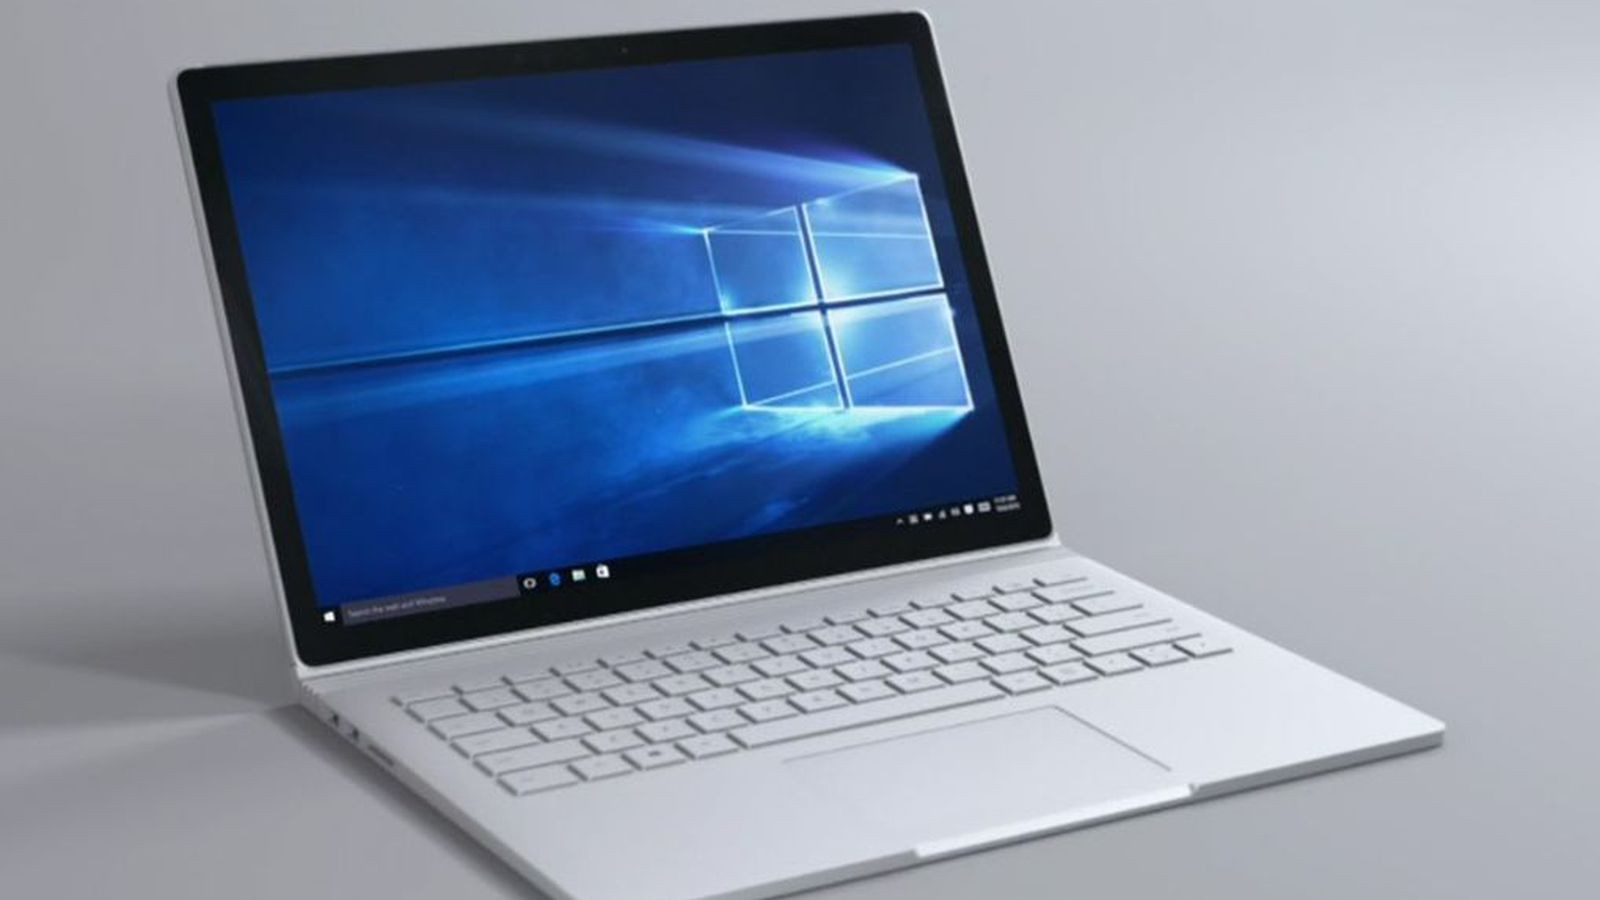 microsoft announces surface book laptop with 13 5 inch display starting at 1 499 the verge. Black Bedroom Furniture Sets. Home Design Ideas